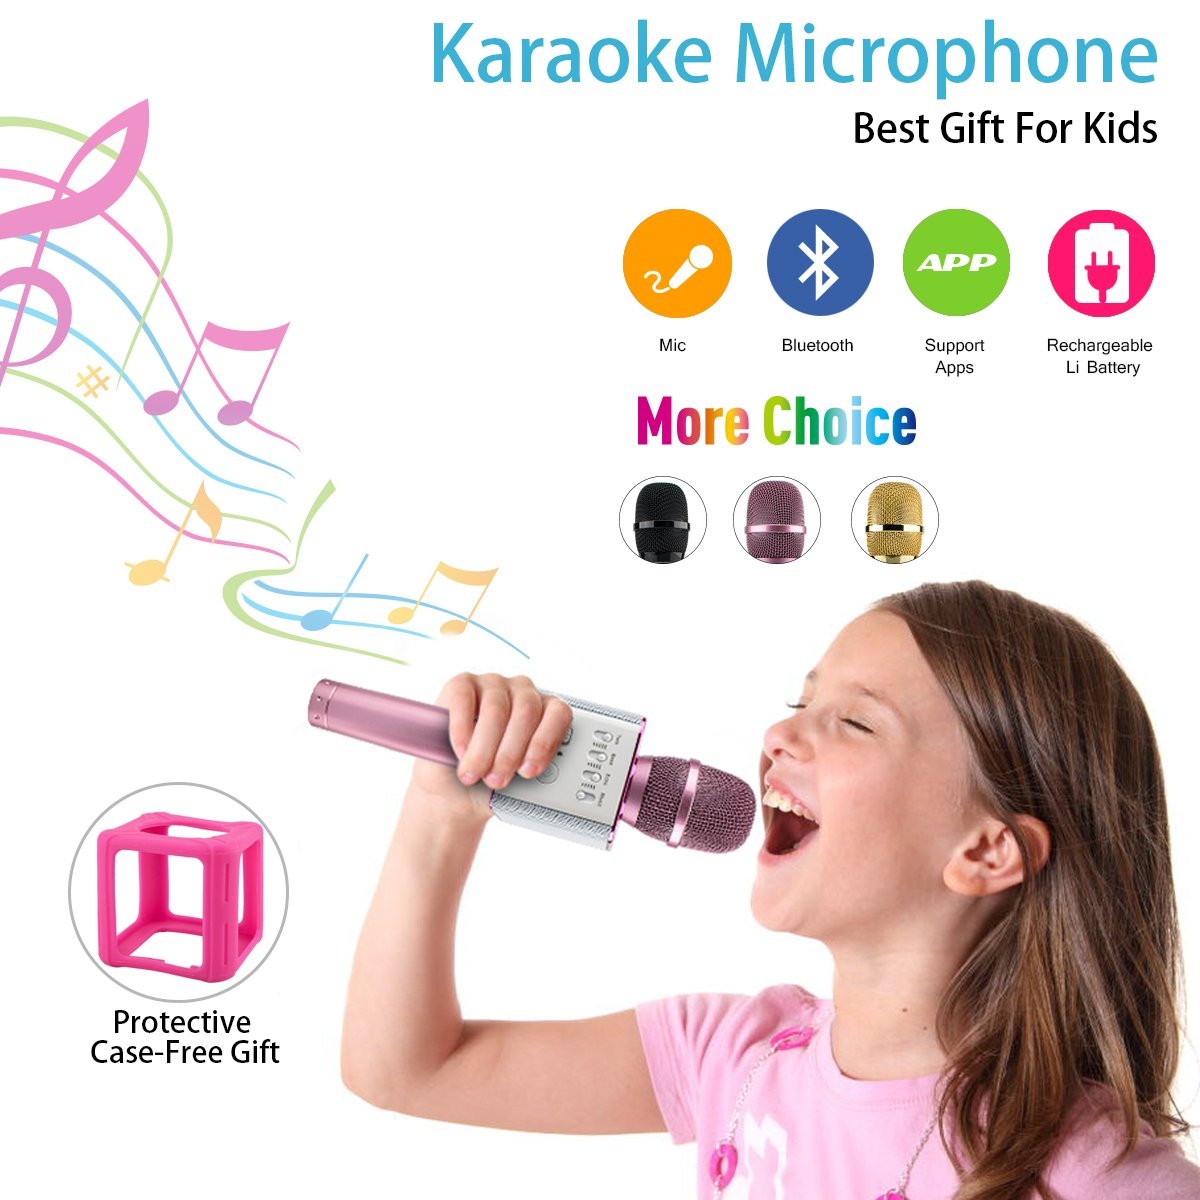 Wireless Kids Karaoke Microphone with Speaker, Portable Bluetooth Microphone Child Karaoke Mic Machine for Kids Adult Singing Party Music Playing, Support iPhone Android Smartphone PC iPad (Pink) Luckymore